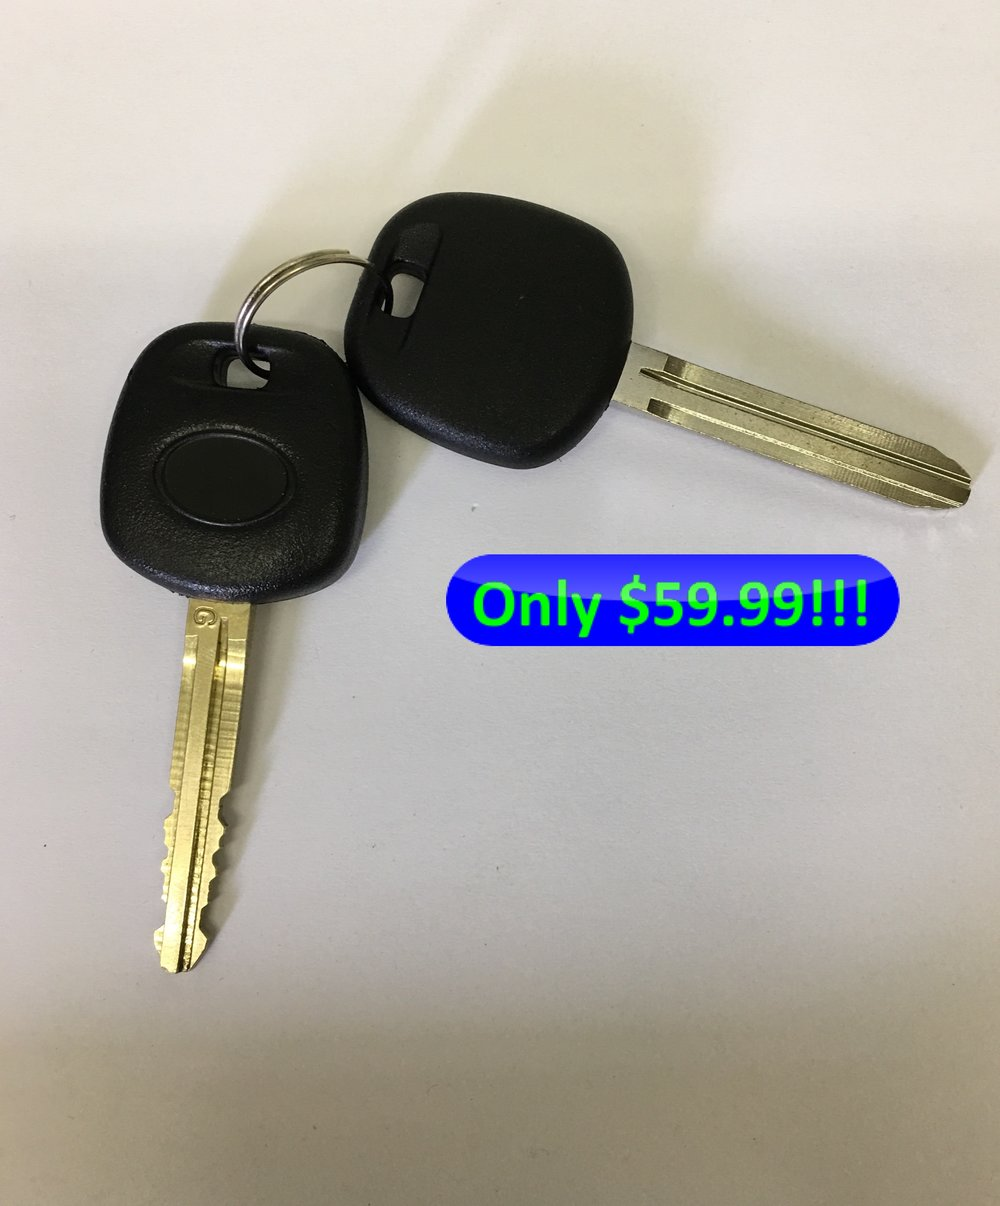 Offer only available at QLP locksmith store located at 4356 Genesee Ave, San Diego, CA 92117. Offer cannot be redeemed with mobile car key service. Offer is subject to only certain vehicle models with specific keys. This offer applies to transponder chip keys and includes programming, not remote keys or push to start key fobs. Offer is subject to California sales tax. Call (858) 231-0248 to See If Your Car Key Qualifies for this Promotion. This promotion ends August 27th, 2017.